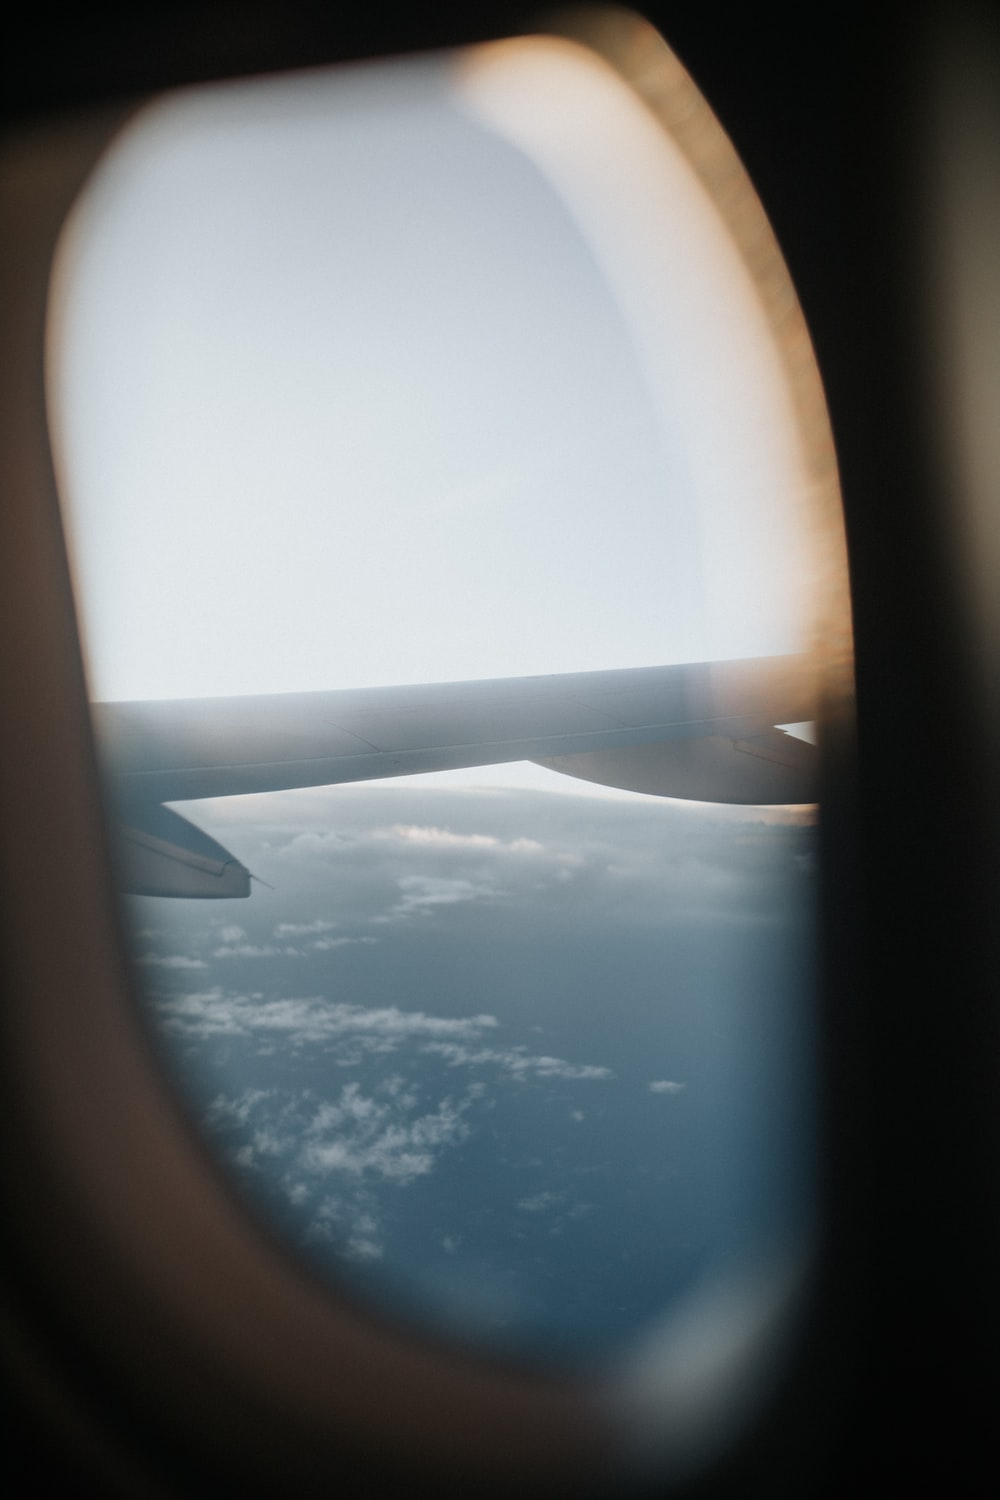 window airplane showing wings